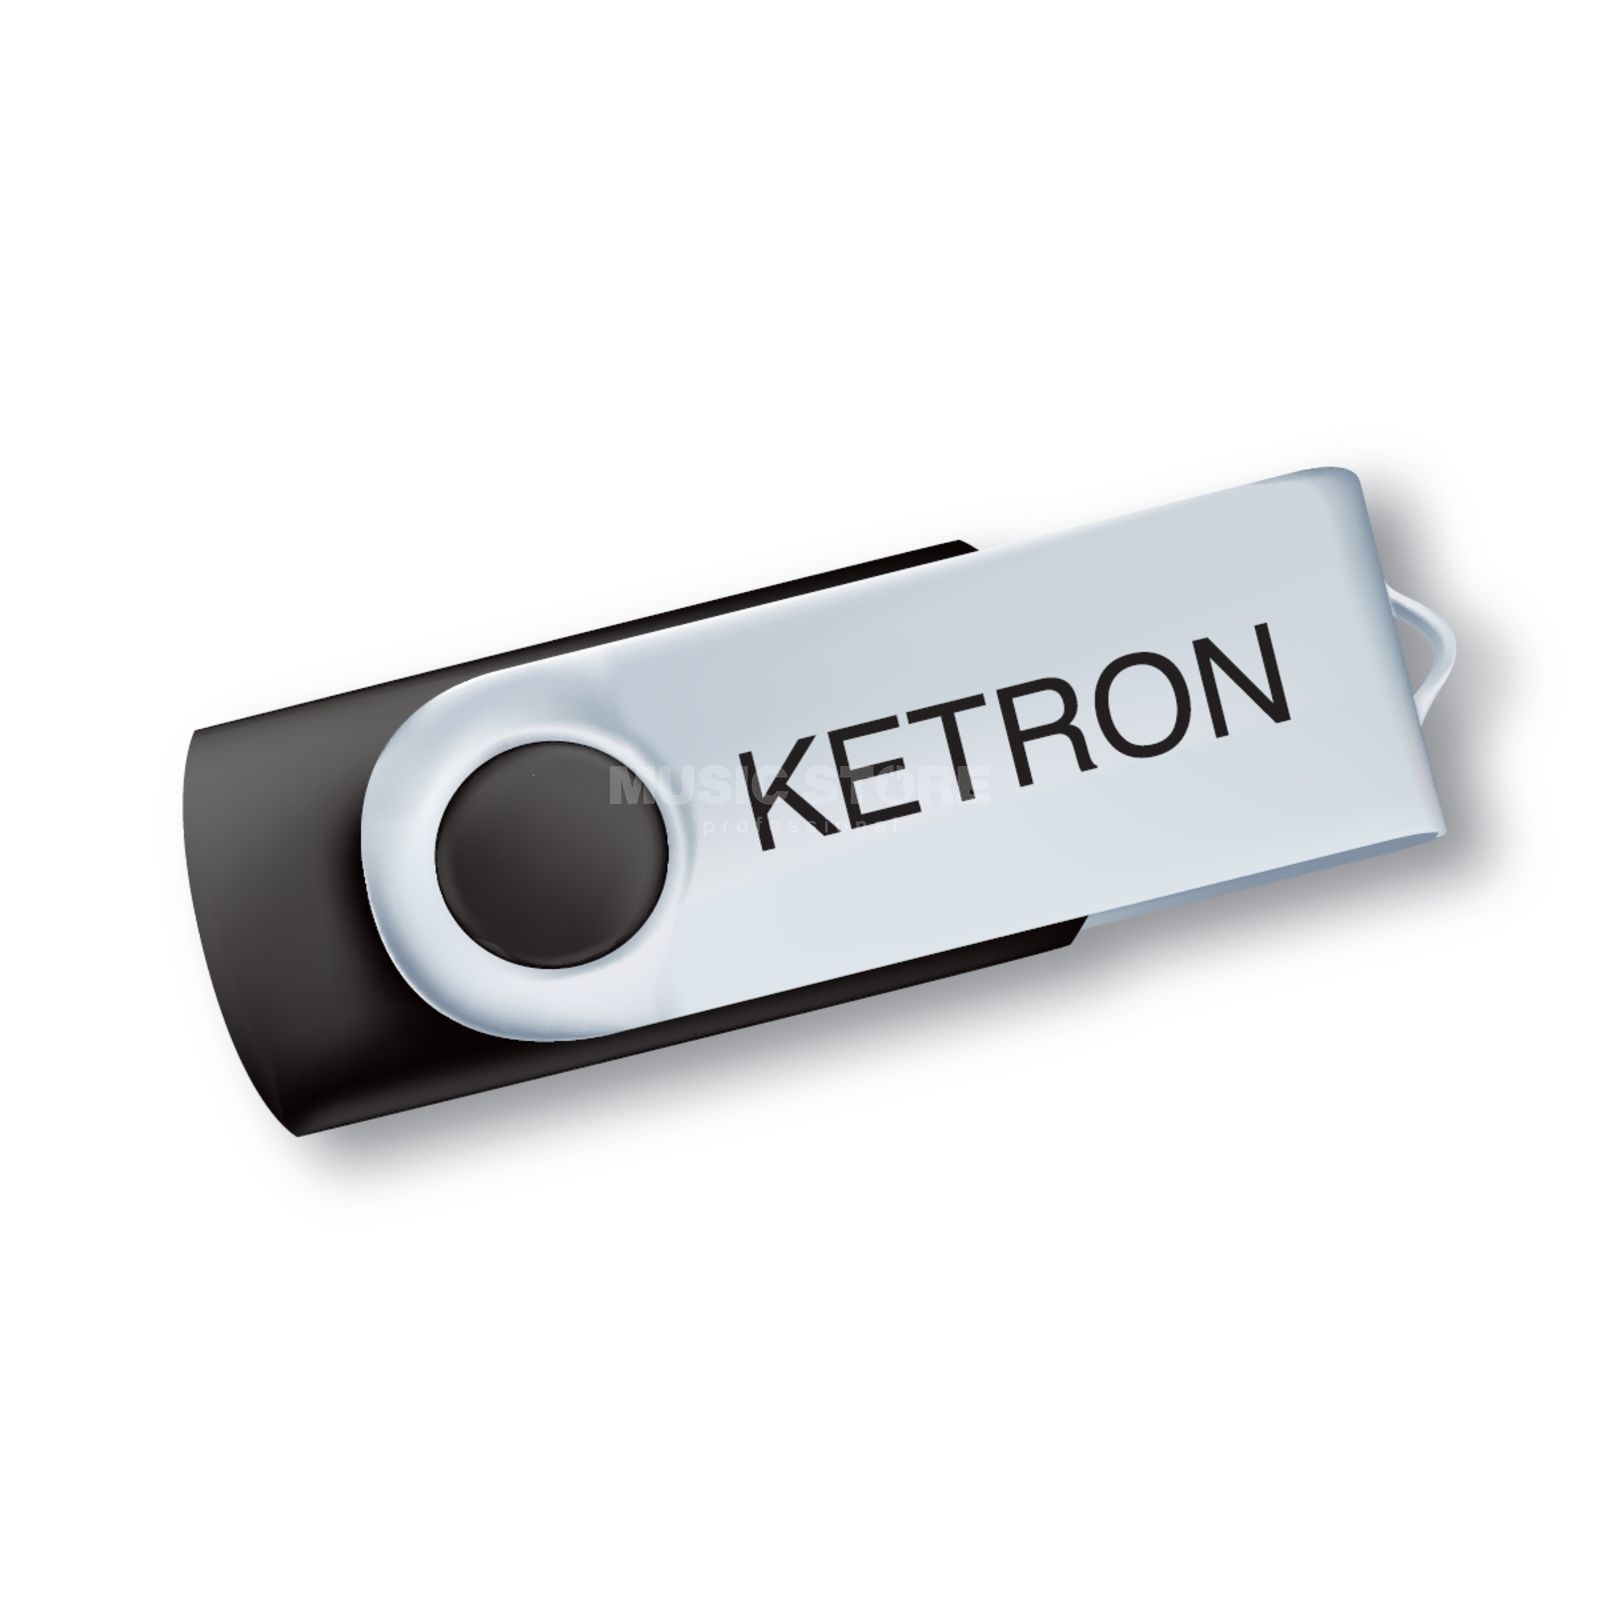 Ketron Pen Drive 2012 USB Stick Song Styles Hits for Audya Produktbillede